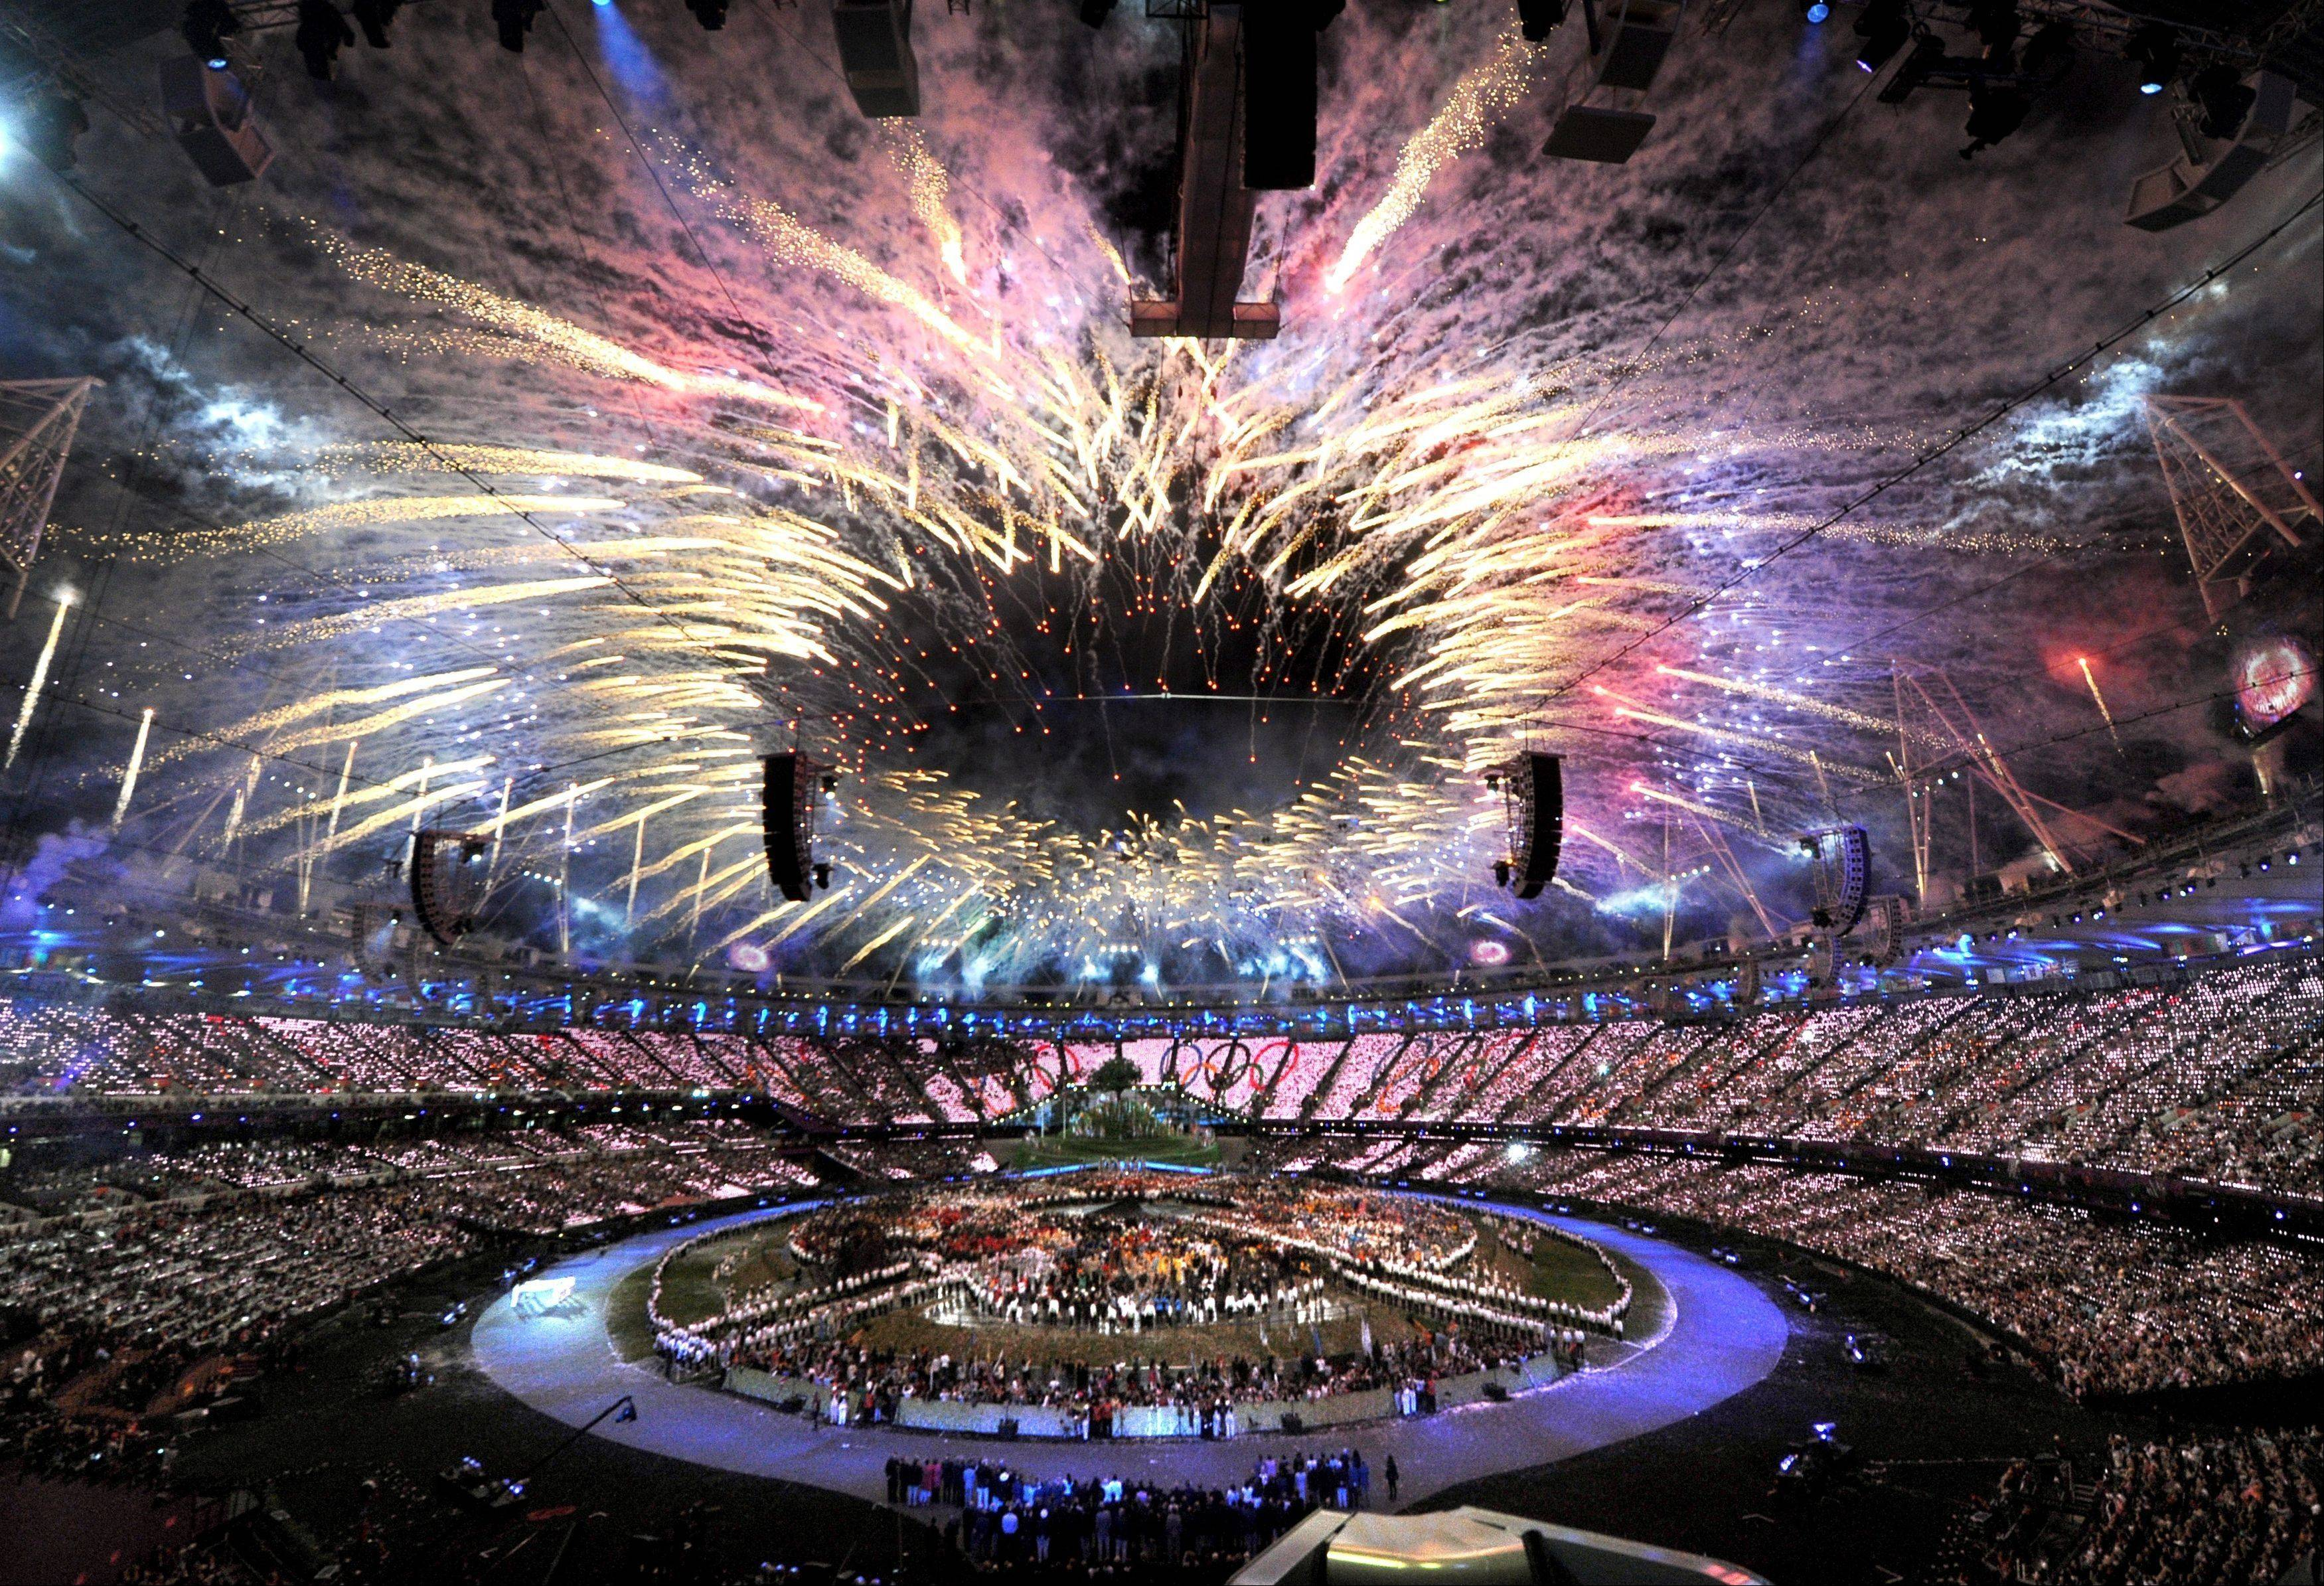 Fireworks light up the Olympic Stadium during the opening ceremony for the 2012 Summer Olympics.